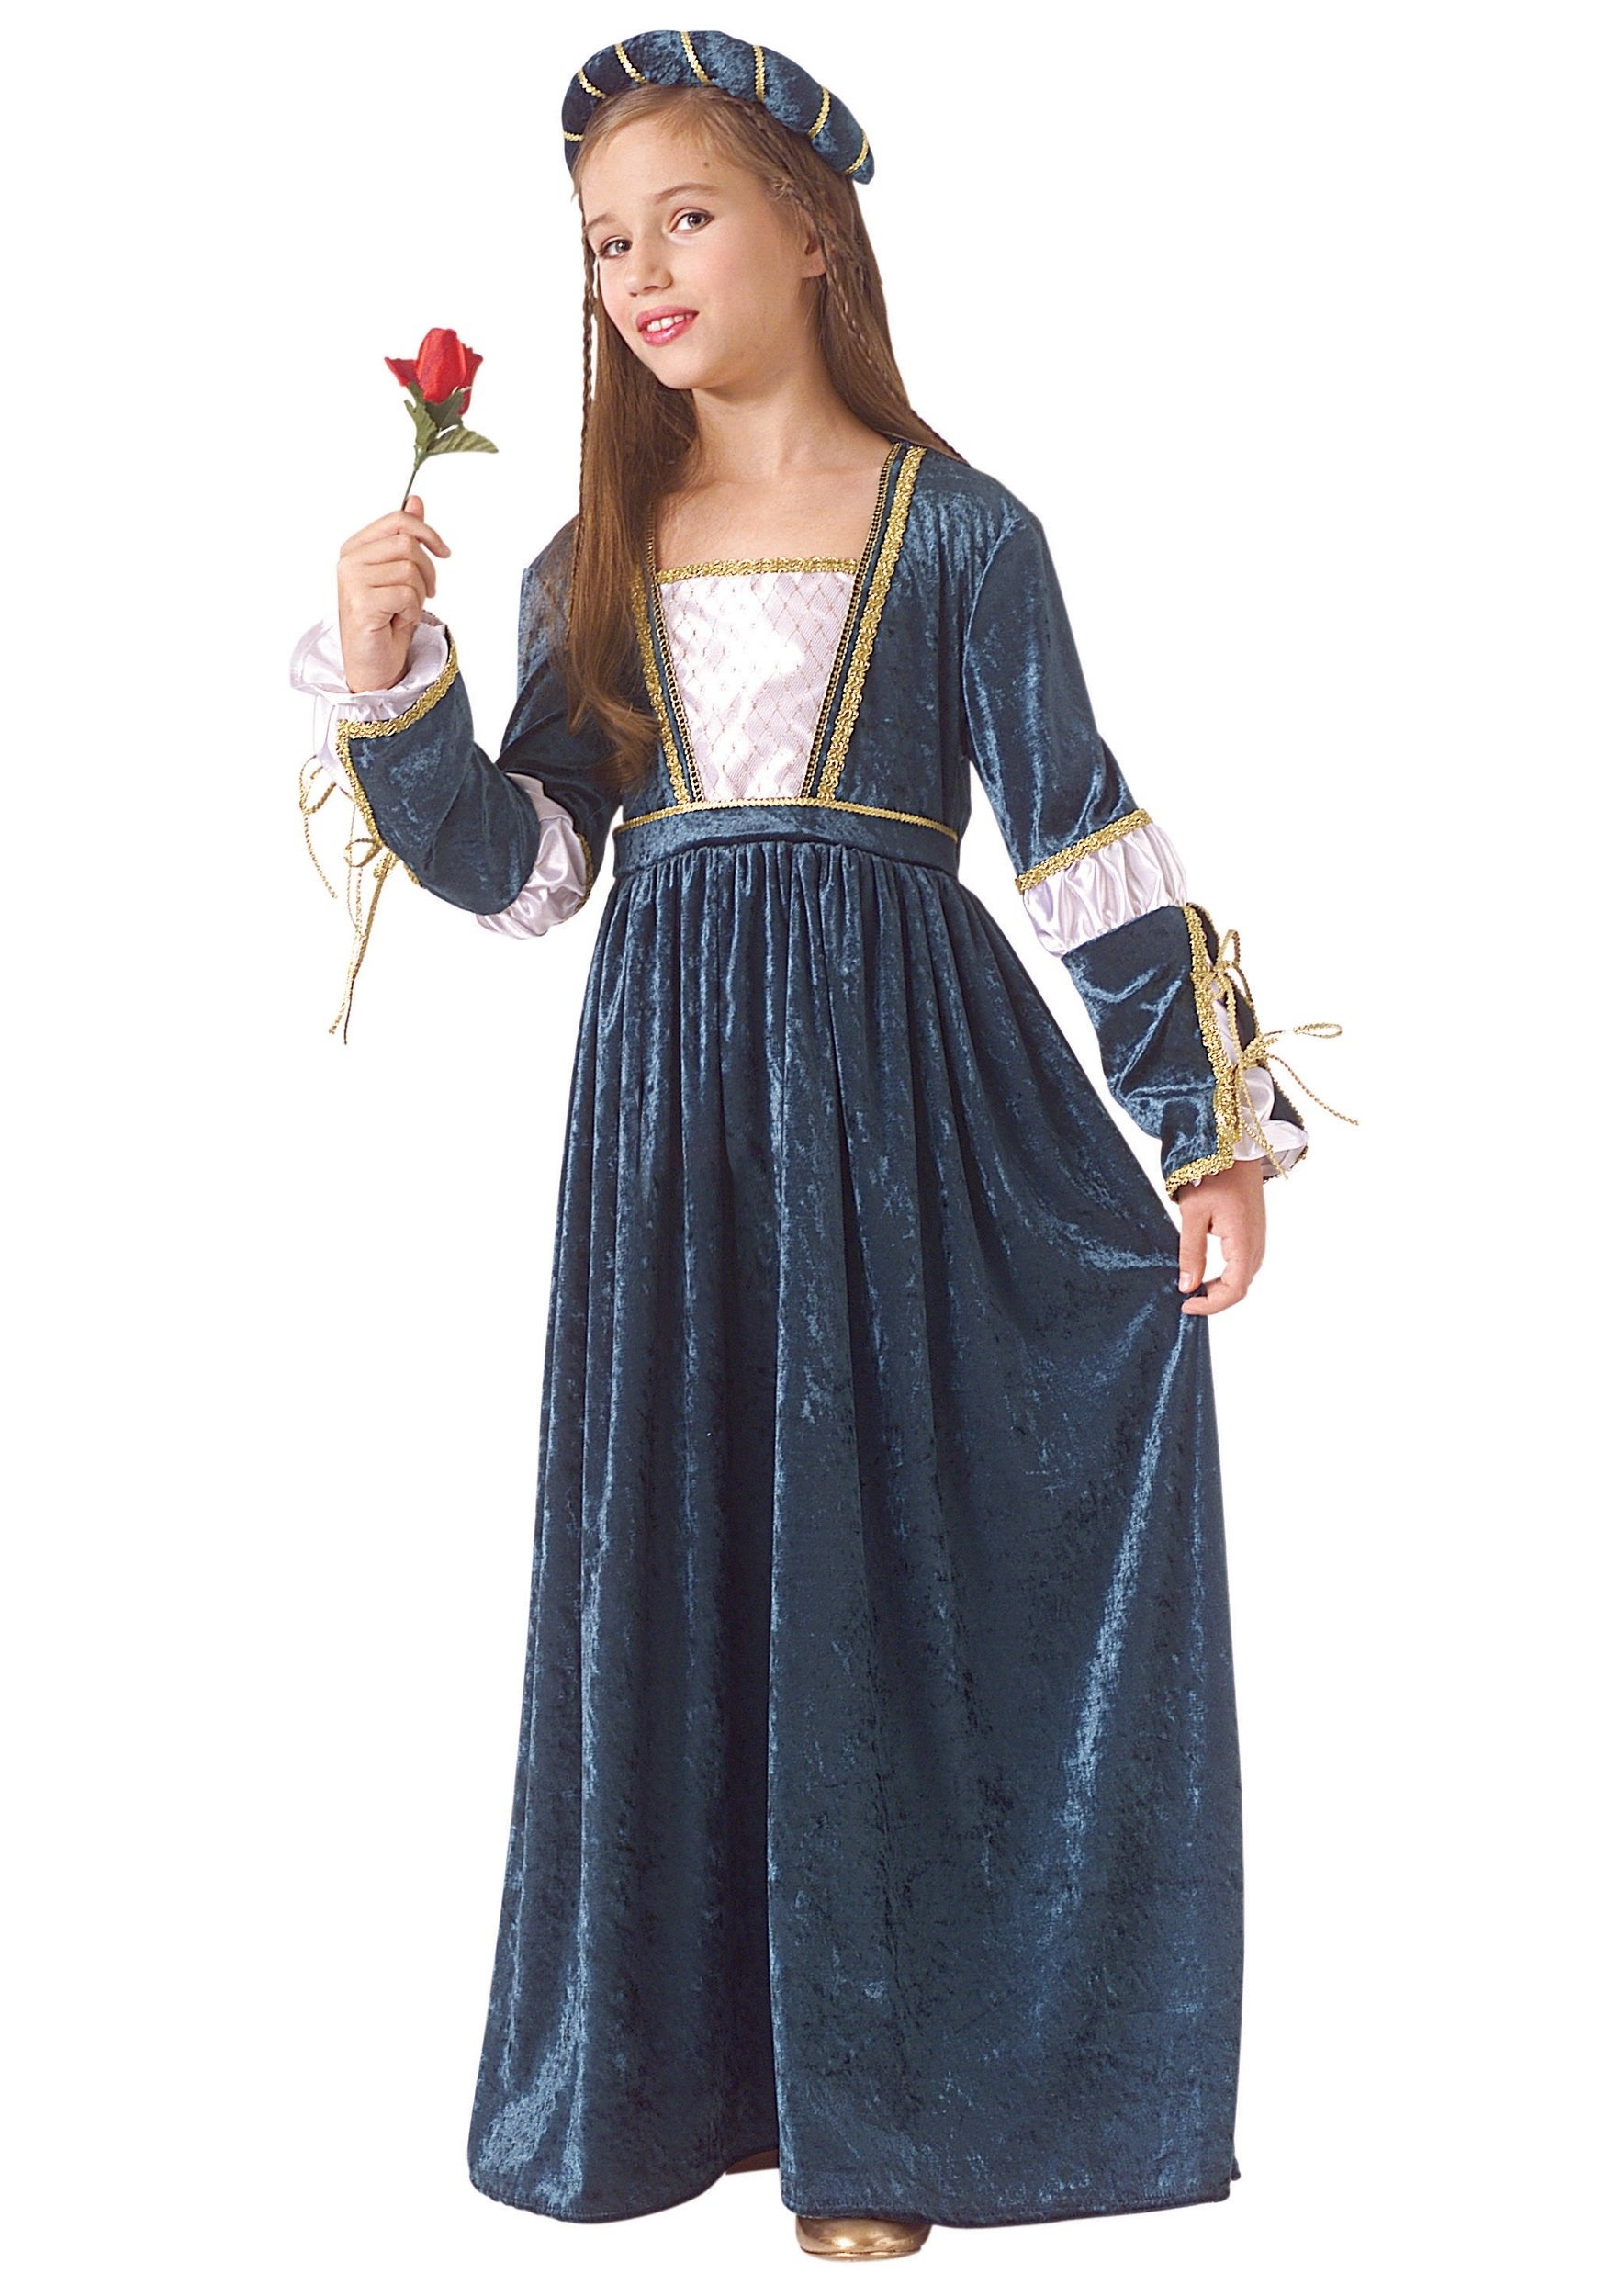 Pictures of romeo and juliet costumes Shakespeare Theatre Company Romeo and Juliet 18